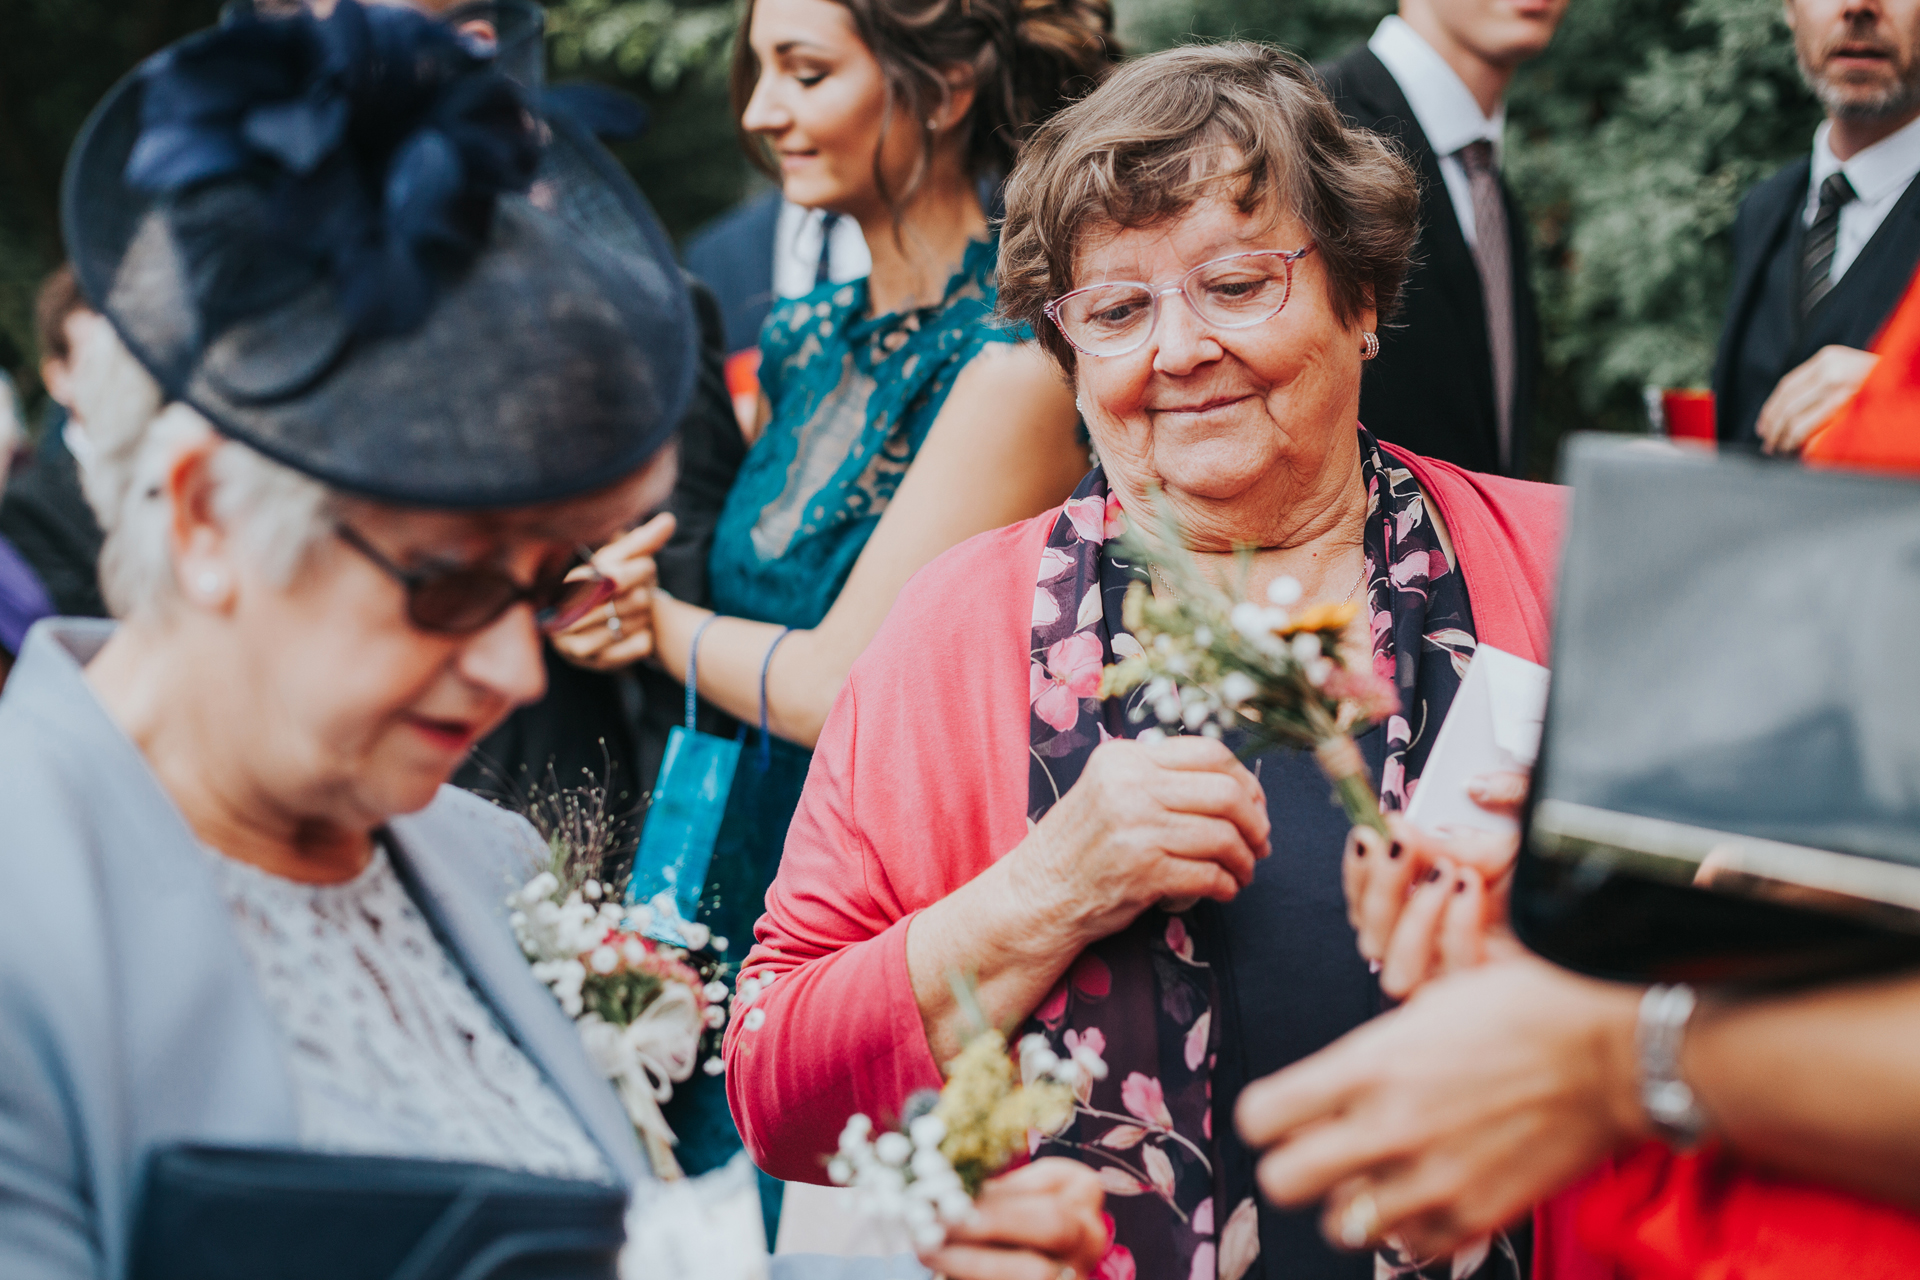 Wedding guests sort out the confetti.